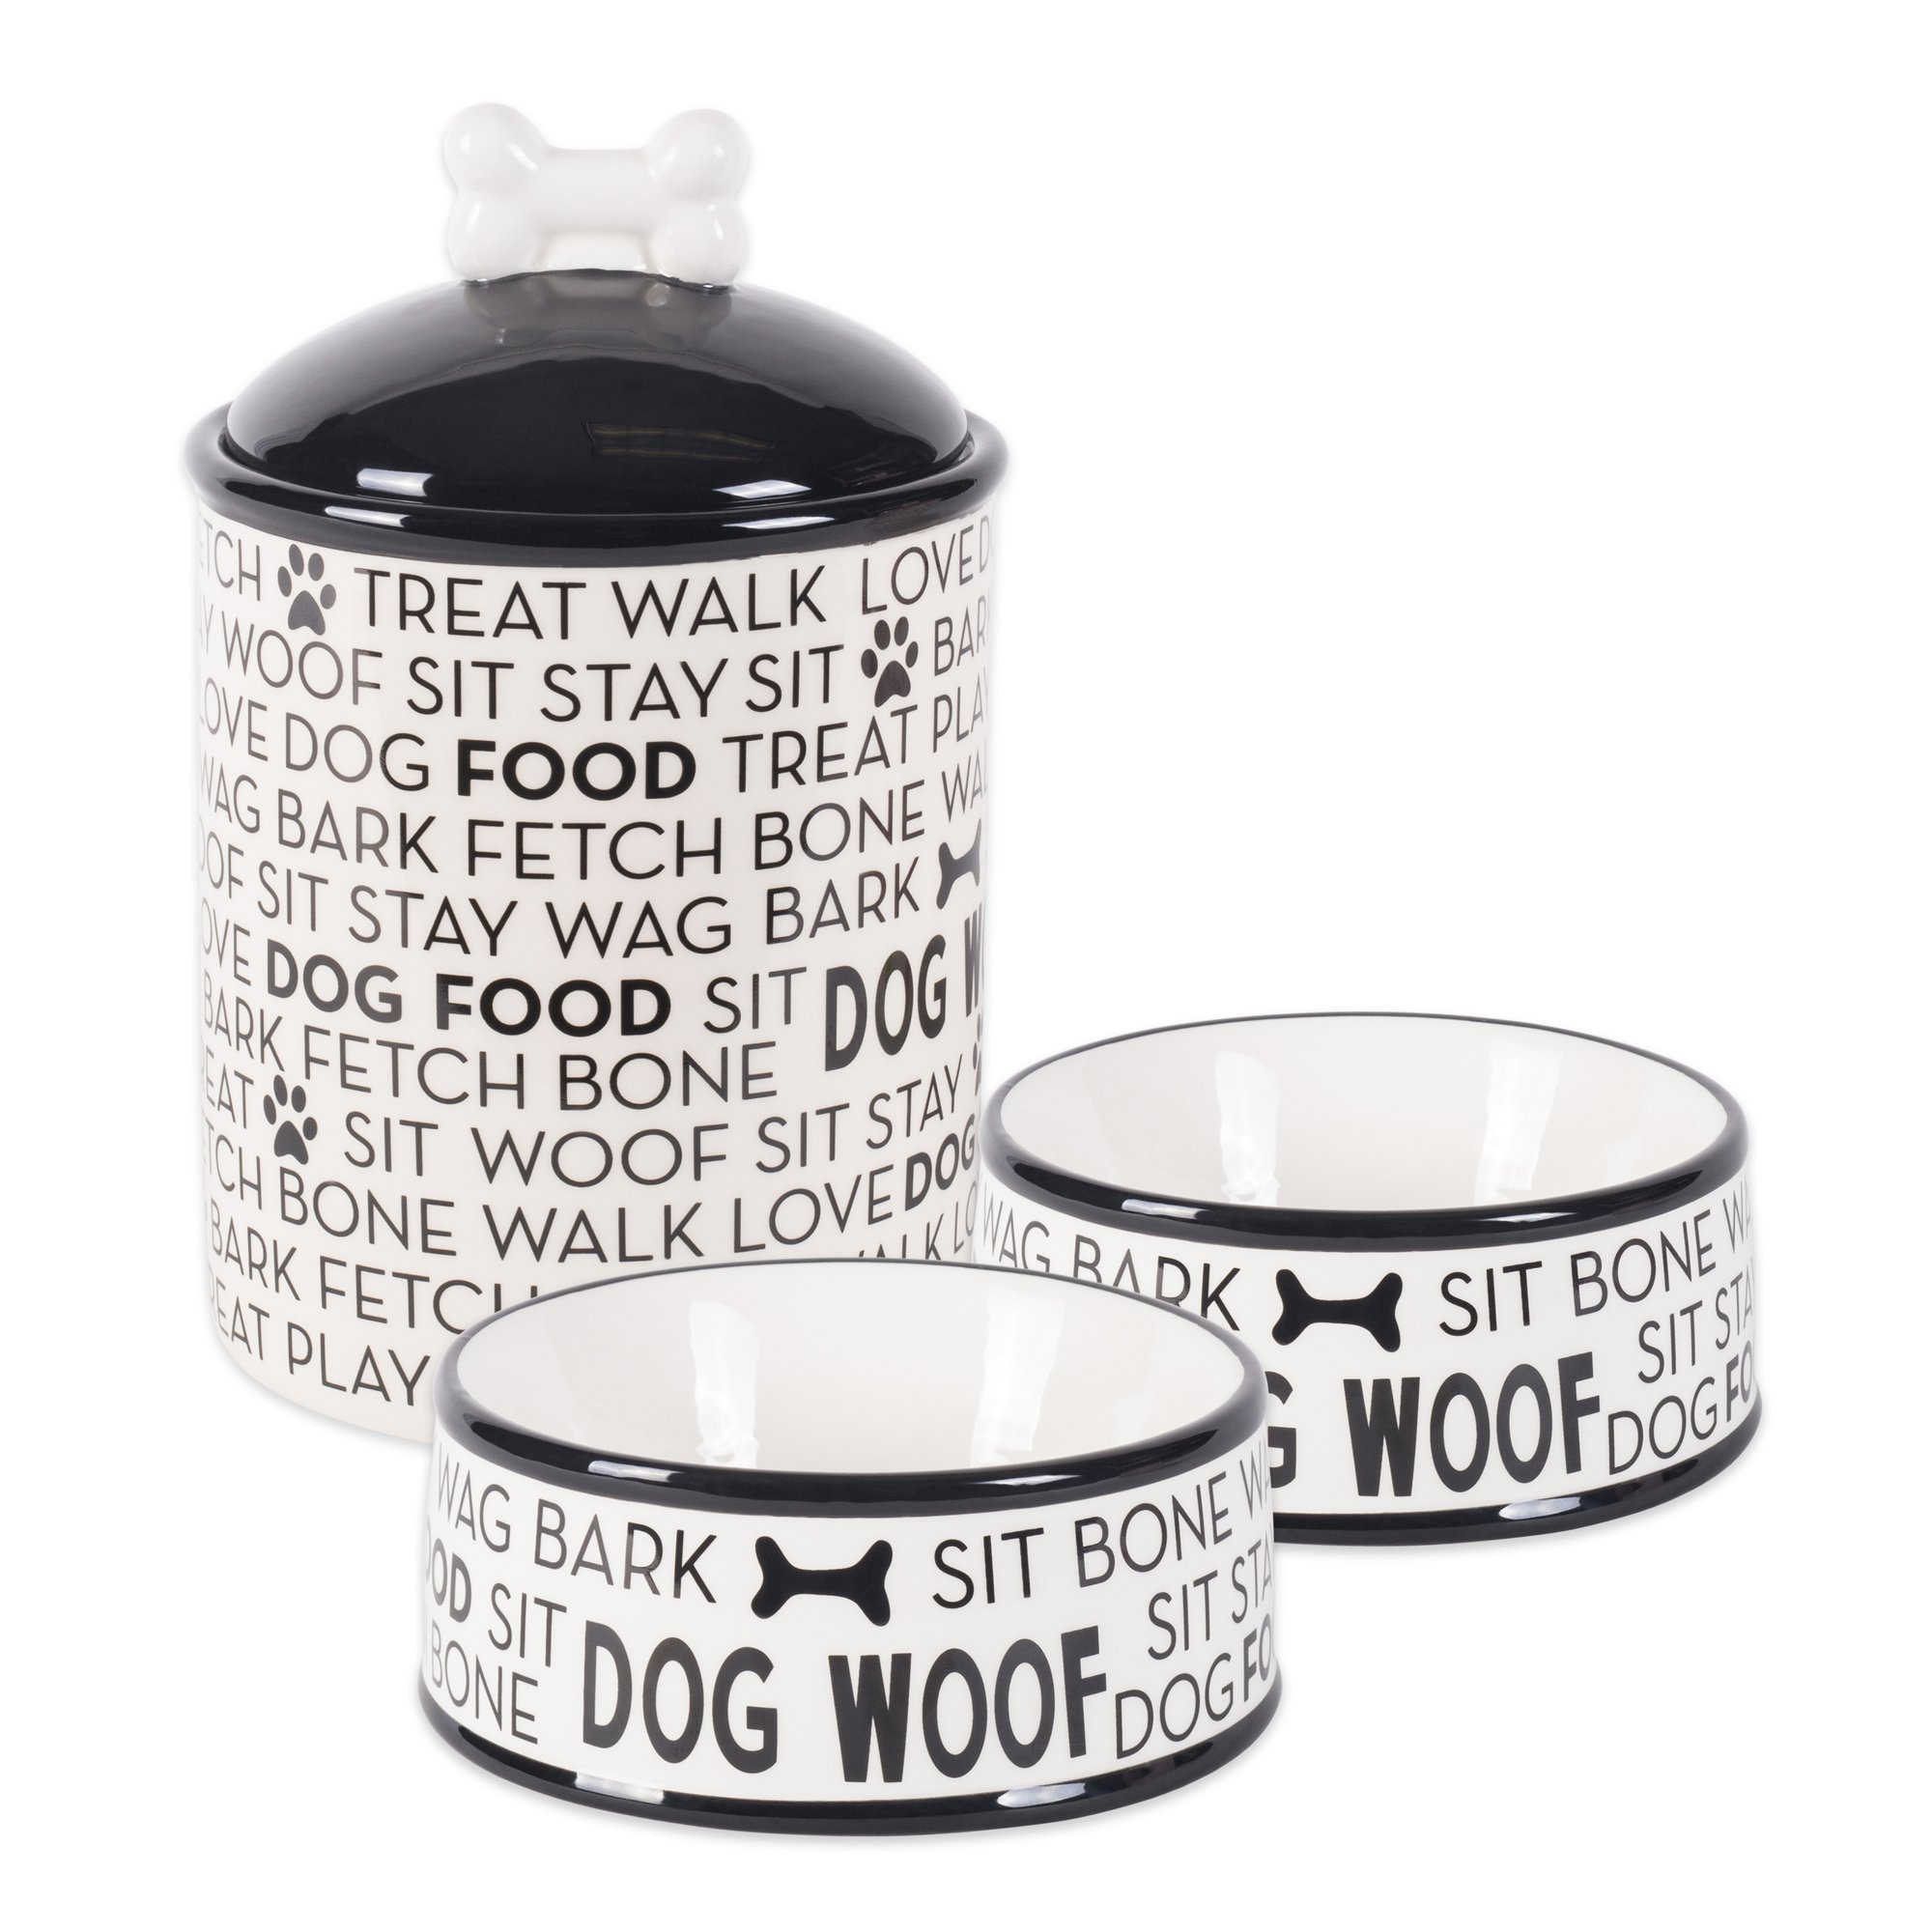 Bone Dry DII Ceramic Pet Food & Water Bowls 6.25'' (Dia) x2.5 (H) and Treat Storage Canister 5.5'' (Dia) x8.25 (H), Set of 3, Perfect Feeding Supplies and Treat Jar for Dogs and Cats - Black Dog Text by Bone Dry